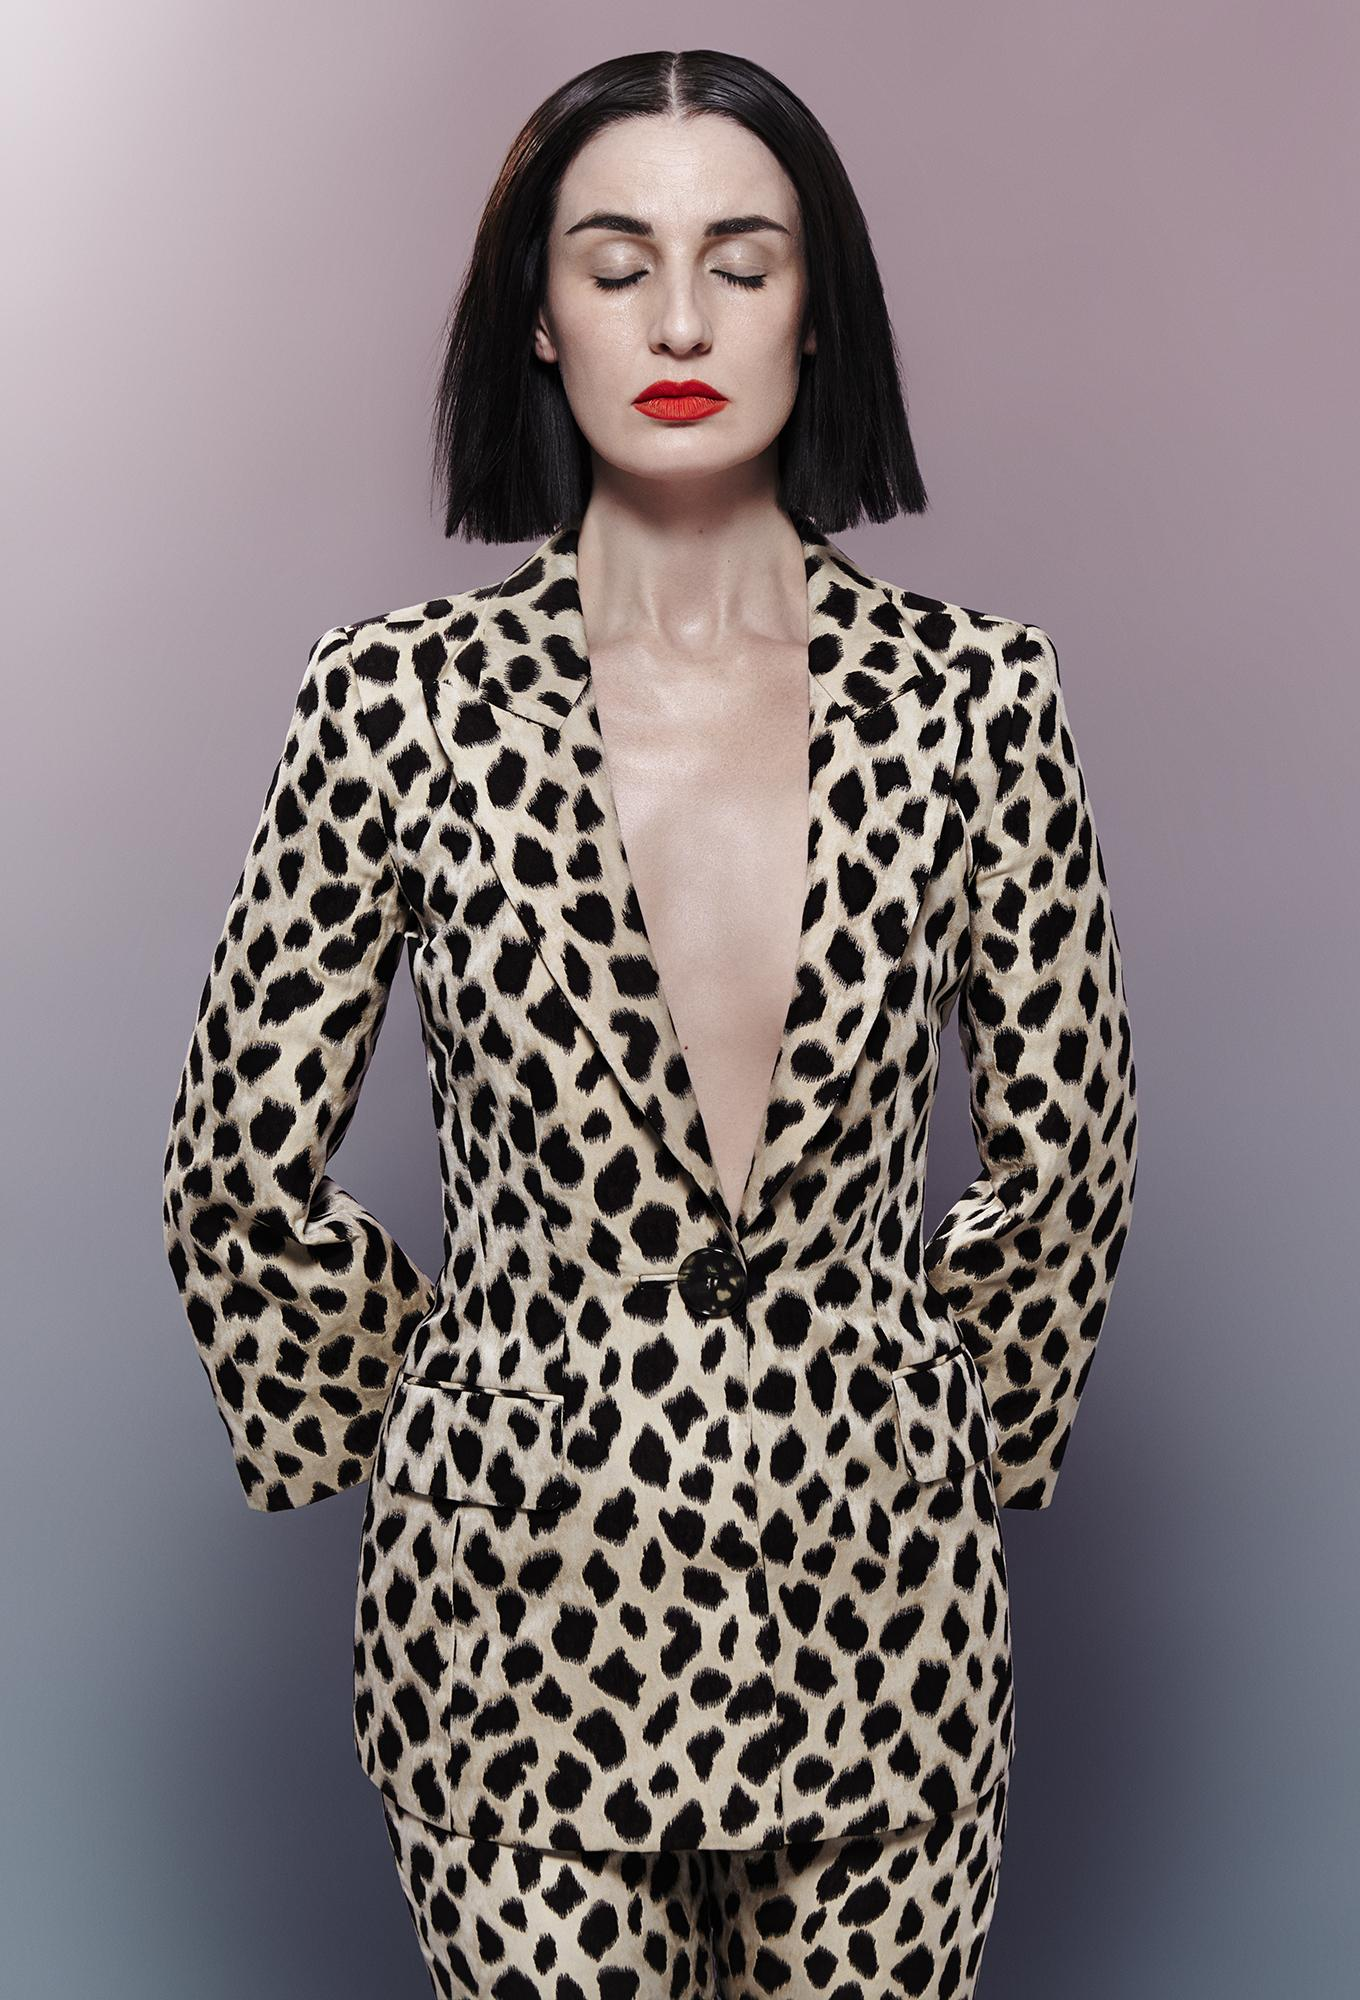 RT @HungerMagazine: In honour of #MilanFashionWeek, here's @Erin_O_Connor in myriad Italian brands: http://t.co/5Q55QZj4rx #Hunger8 http://…